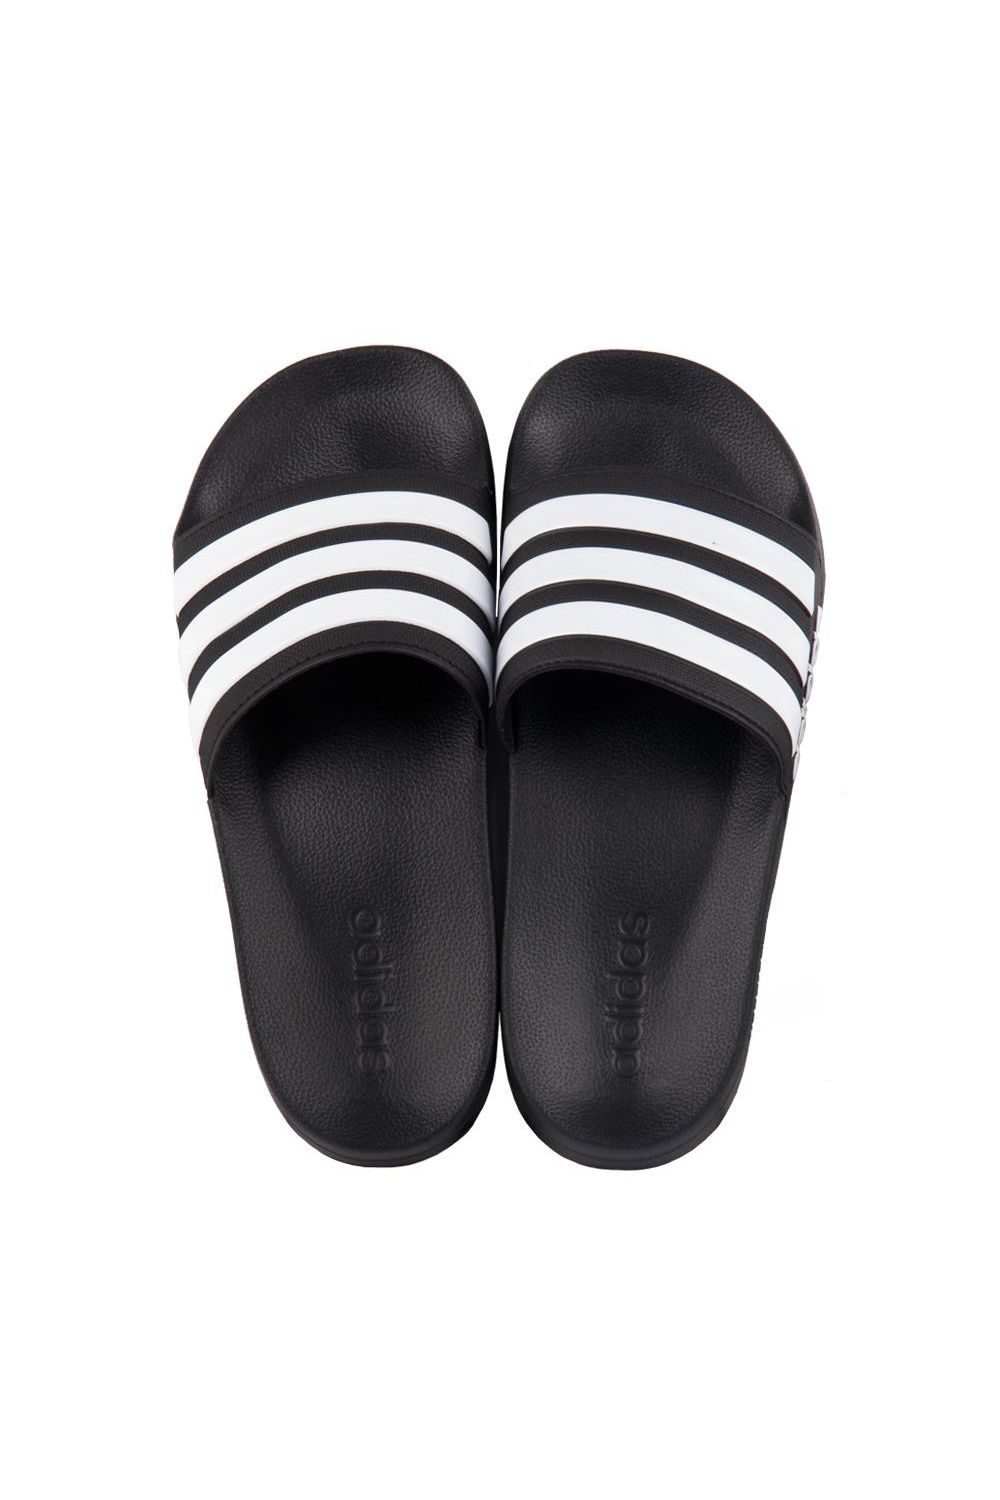 95f1de77e0 Chinelo Adidas Slide Adilette Shower Preto Branco